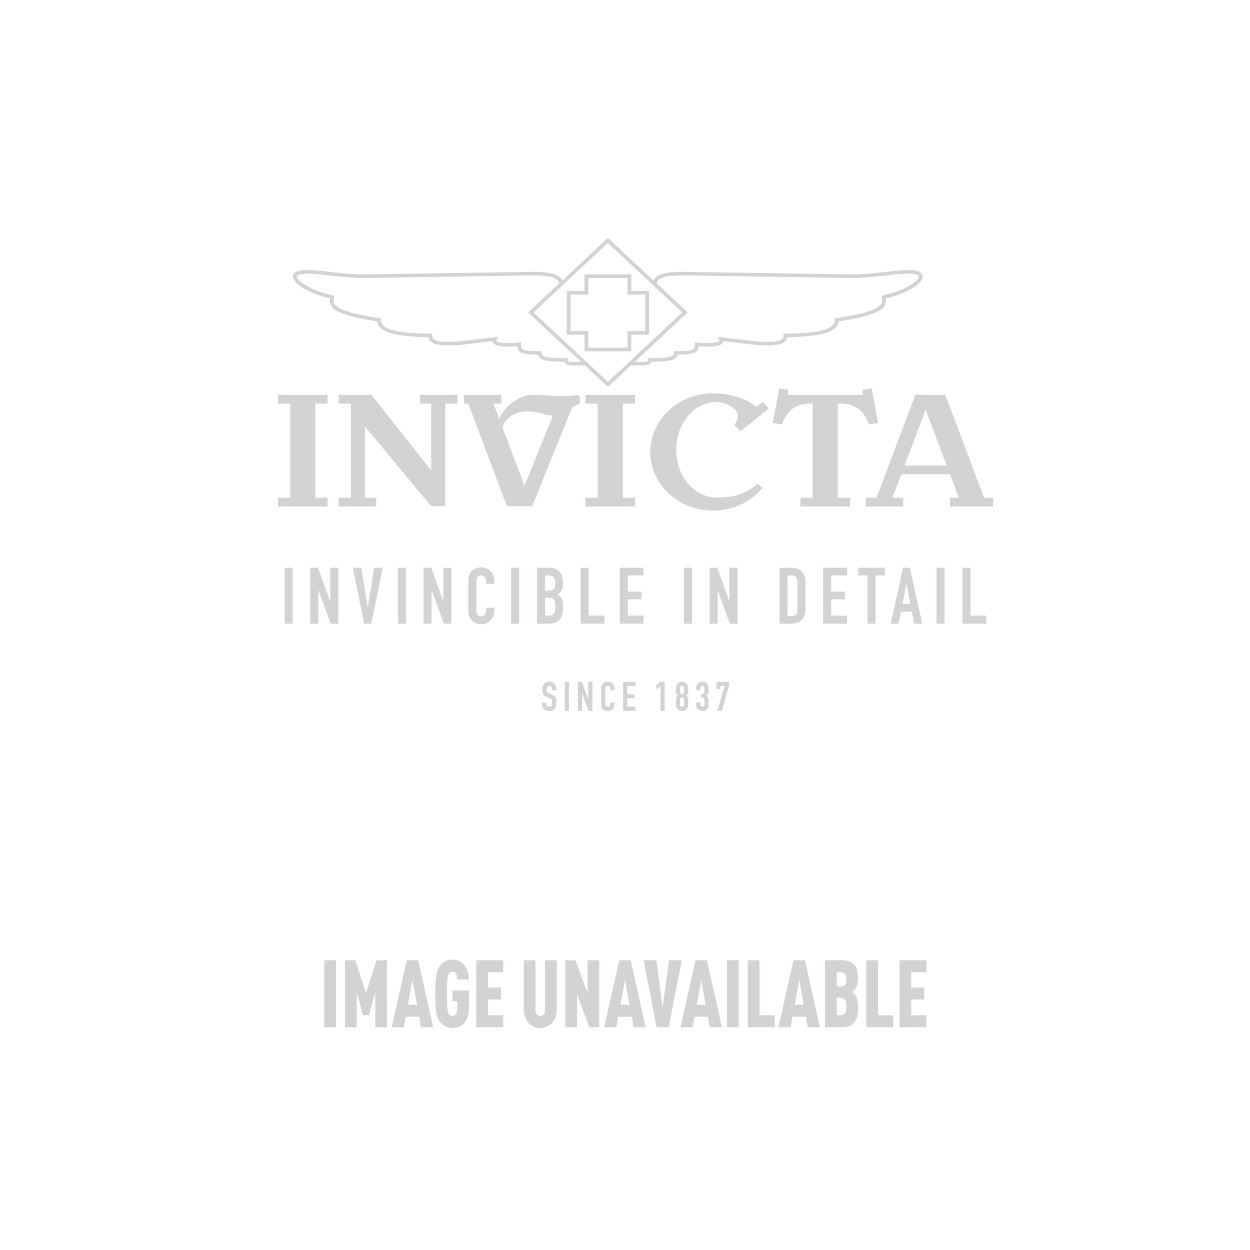 Invicta Angel Swiss Movement Quartz Watch - Rose Gold case with Steel, Rose Gold tone Stainless Steel band - Model 13613